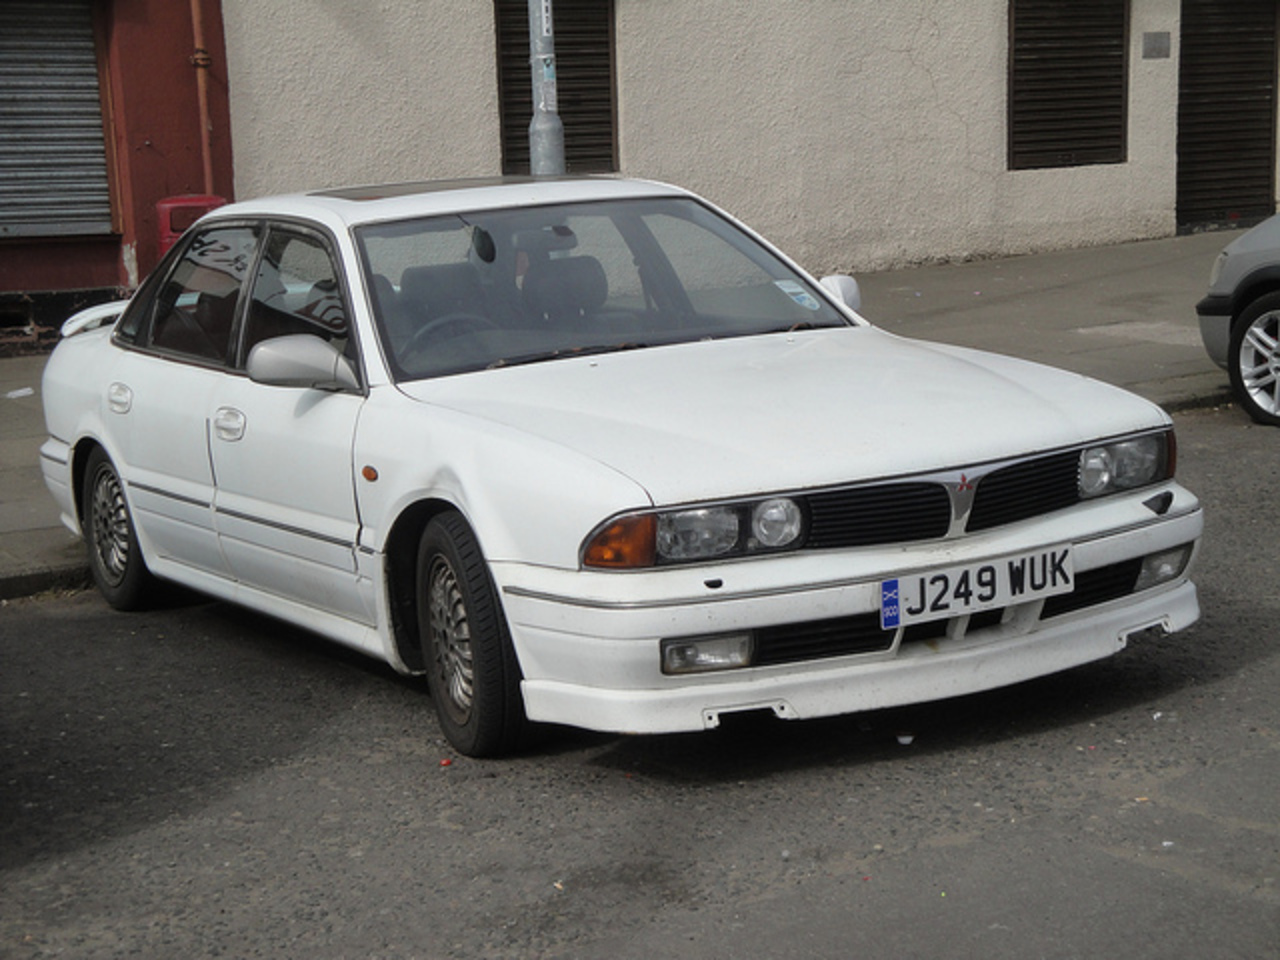 1991 Mitsubishi Sigma V6 24 Auto | Flickr - Photo Sharing!